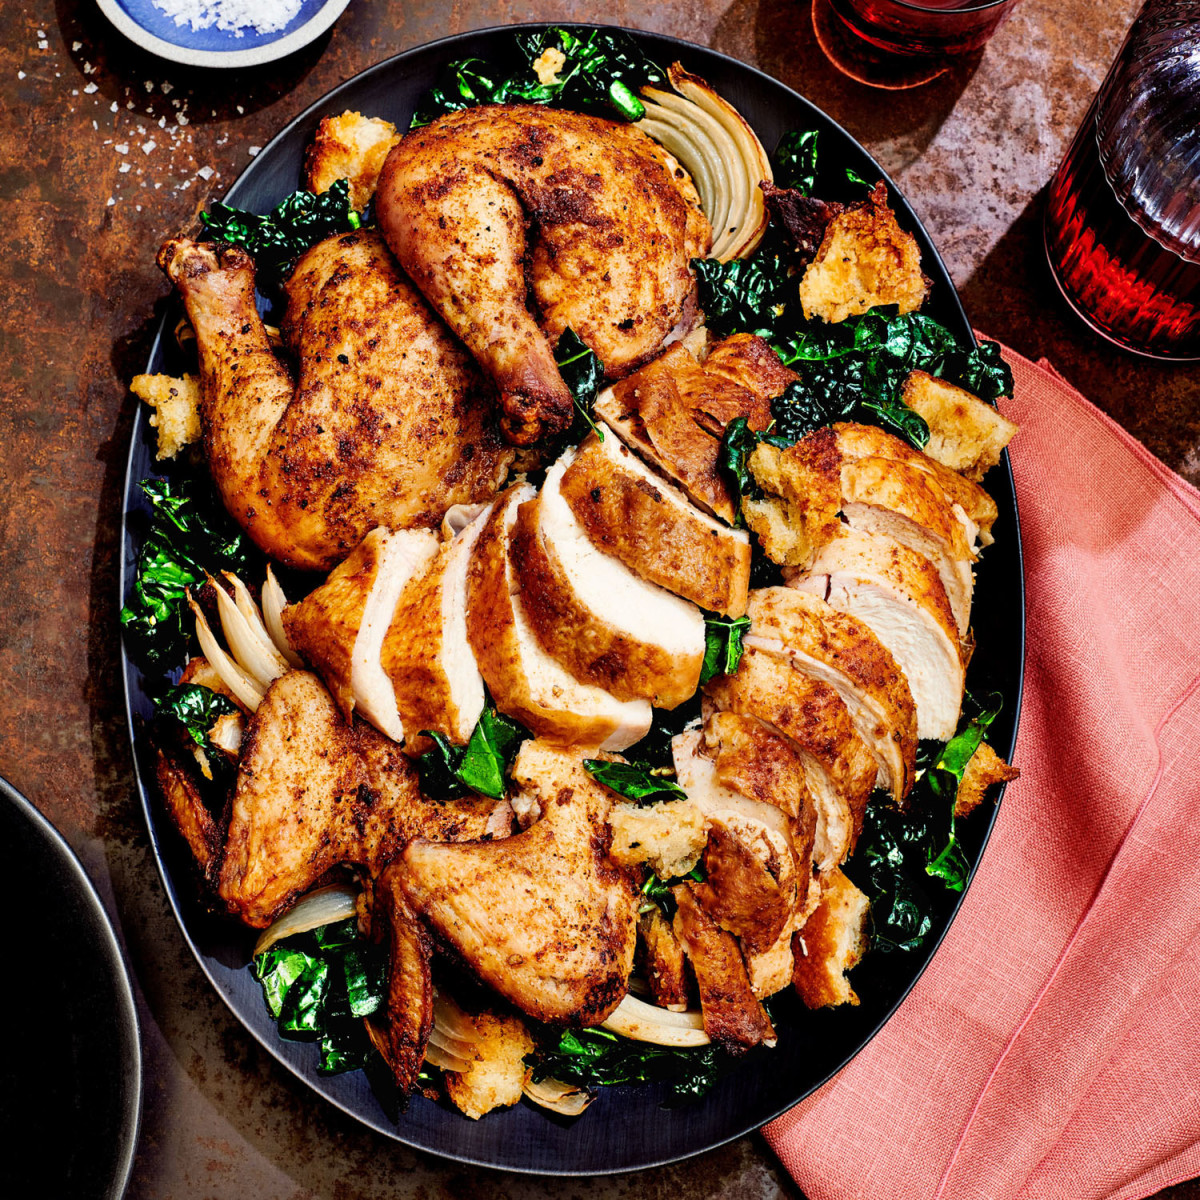 spice-rubbed butterflied roast chicken with kale salad and crunchy croutons